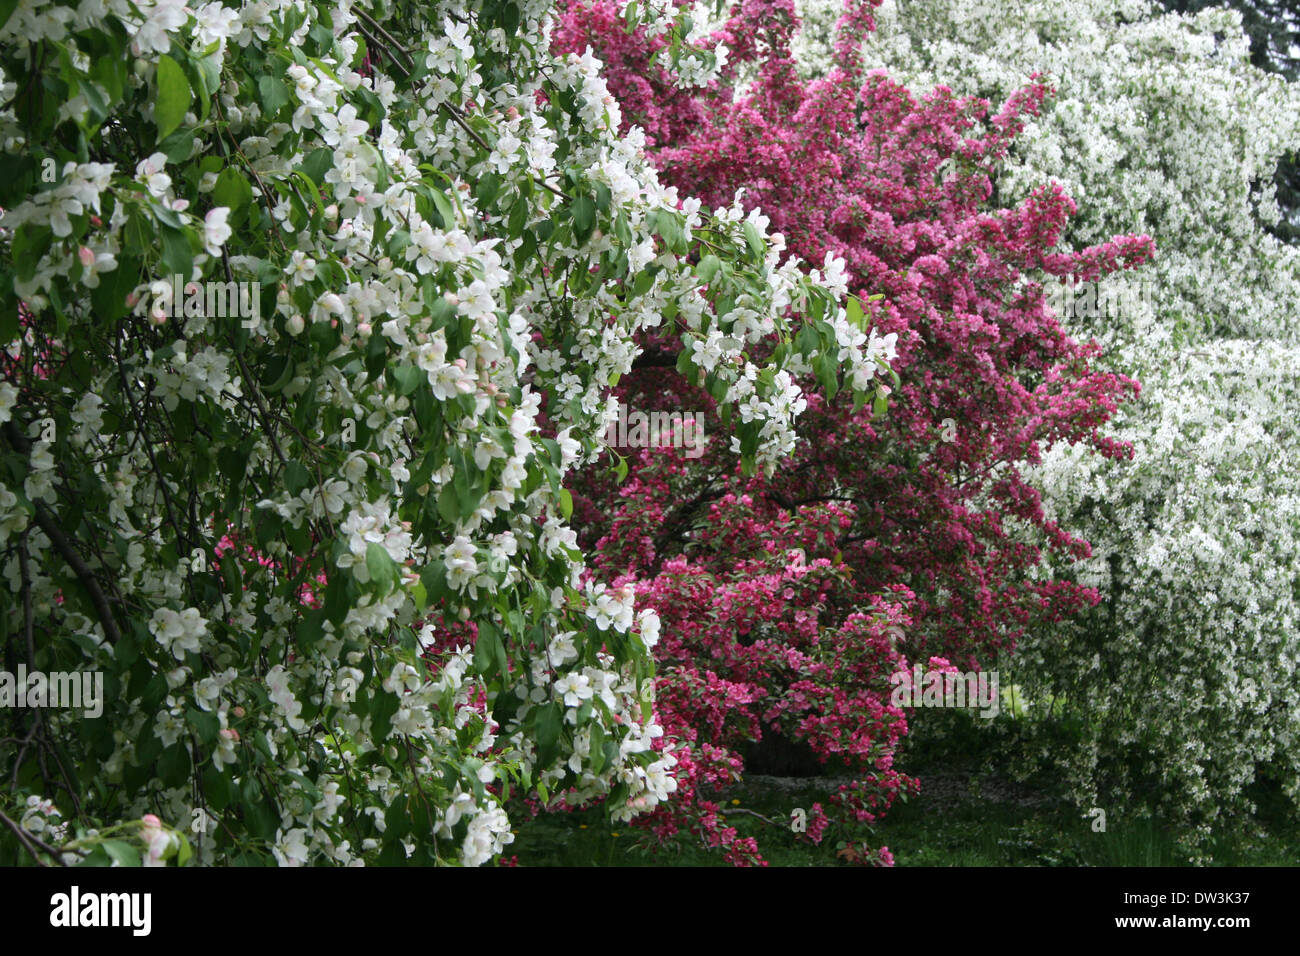 Blooming purple flowers tree branches stock photos blooming purple trees blooming in spring with white and purple flowers stock image mightylinksfo